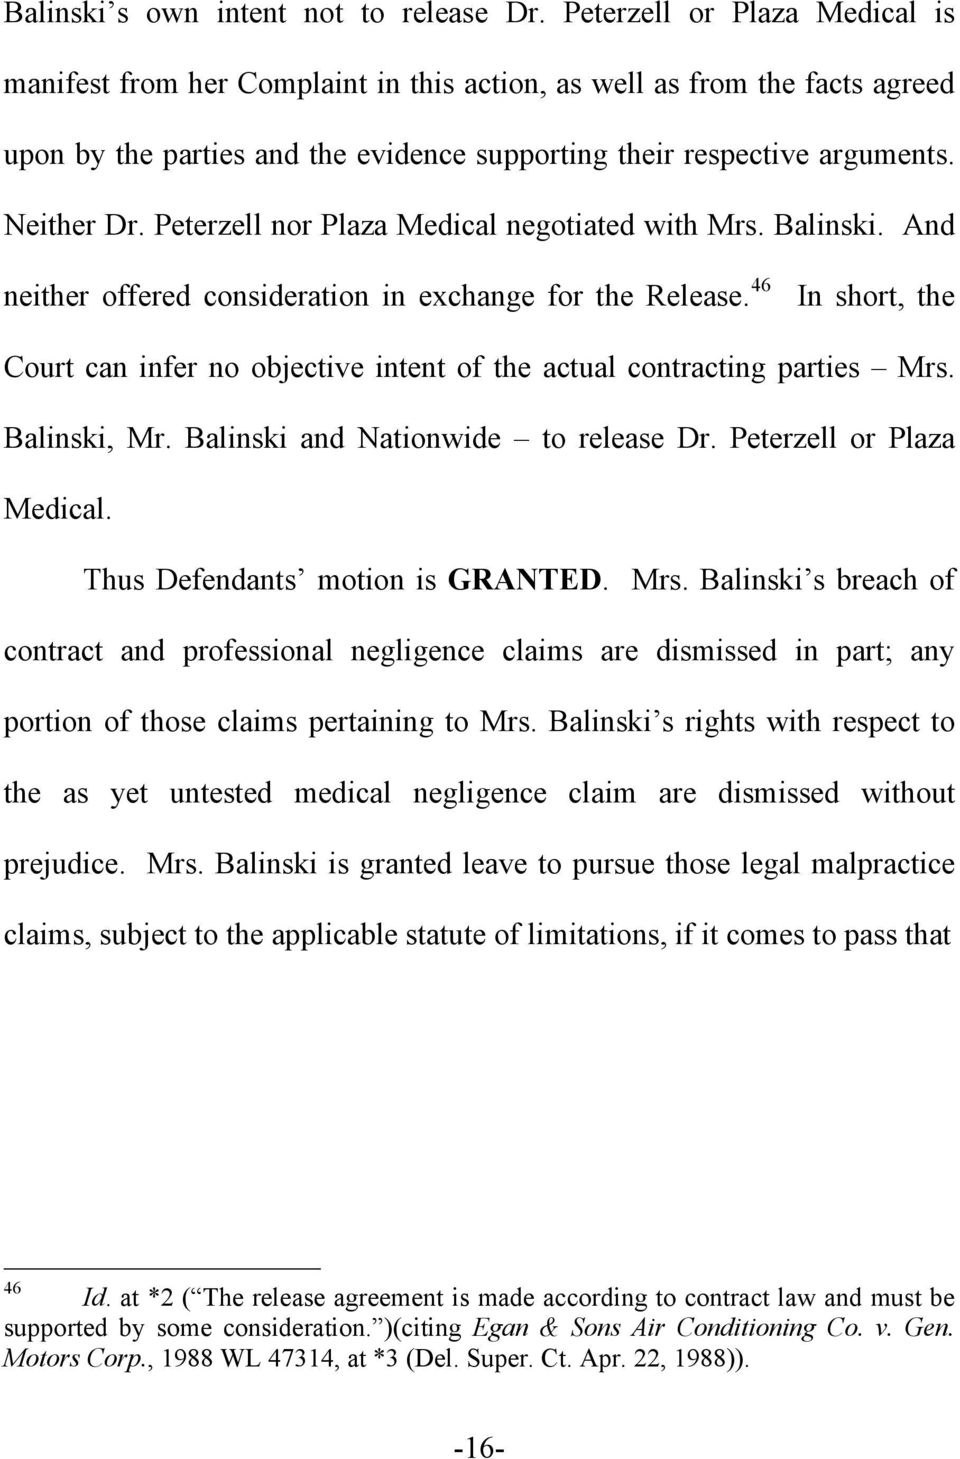 Peterzell nor Plaza Medical negotiated with Mrs. Balinski. And neither offered consideration in exchange for the Release.